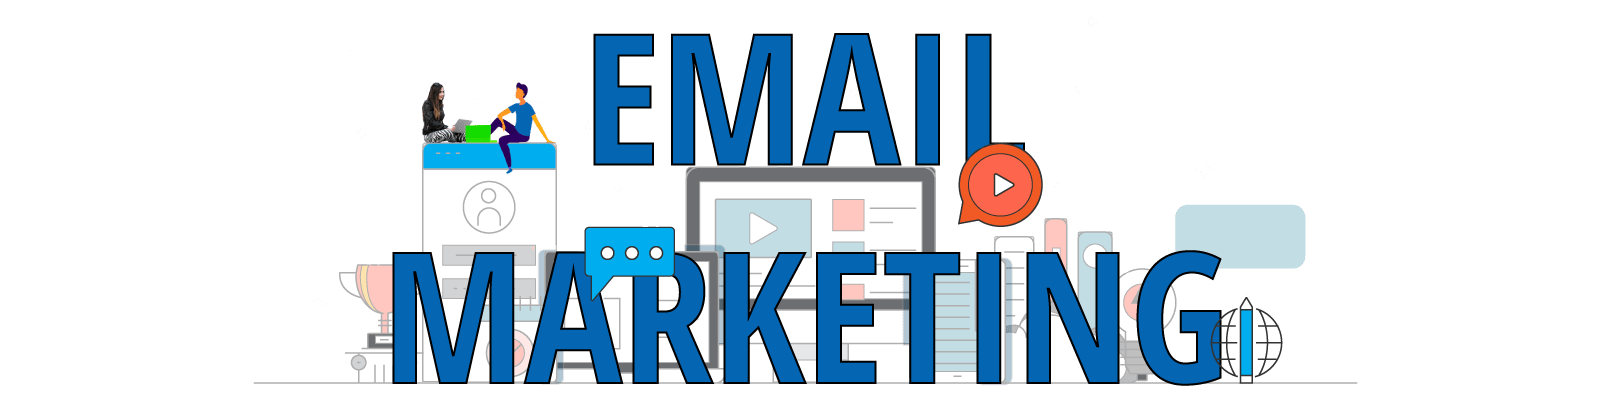 EMAIL-MARKETING-min